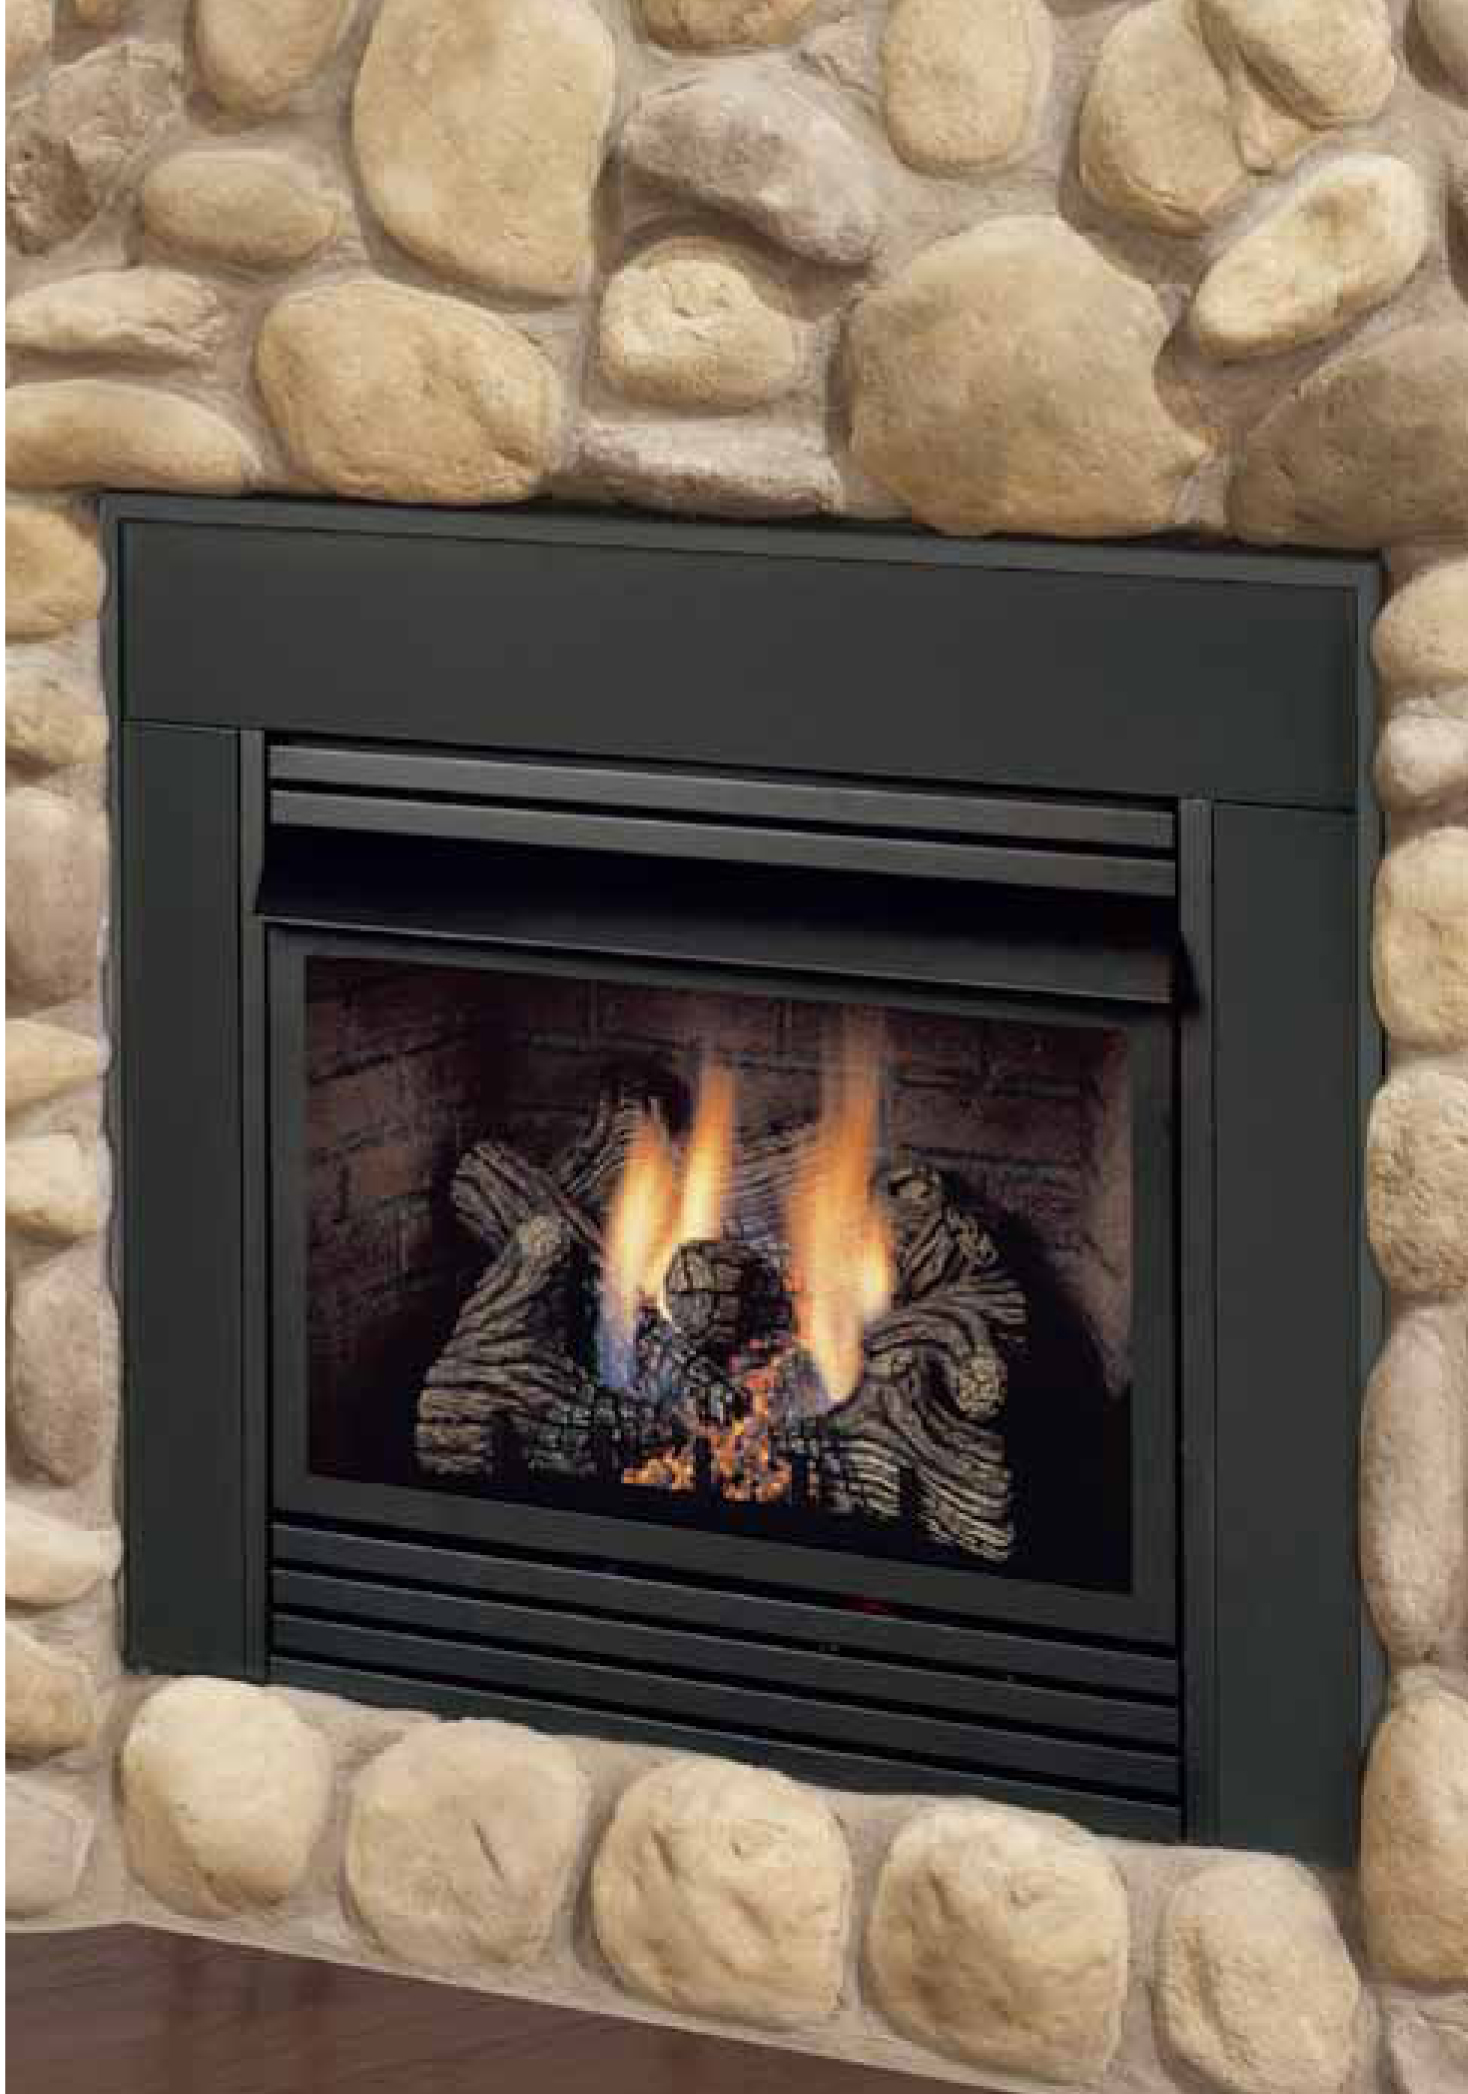 Recreational Warehouse - Ventless Logs, Ventless Fireplaces, Vent ...